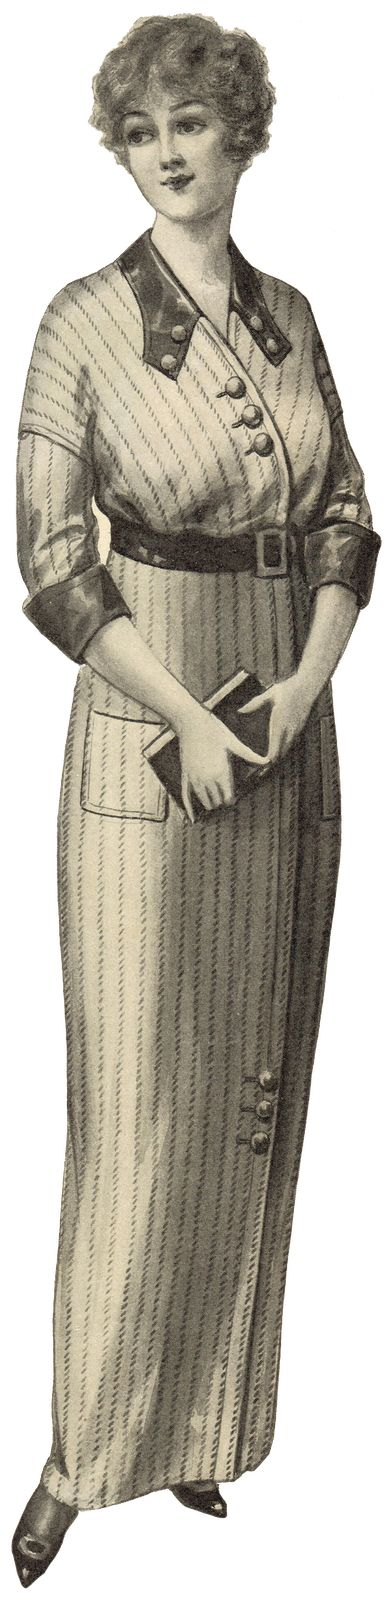 Knick of Time: Antique Graphics Wednesday - 1900's Women's Fashion